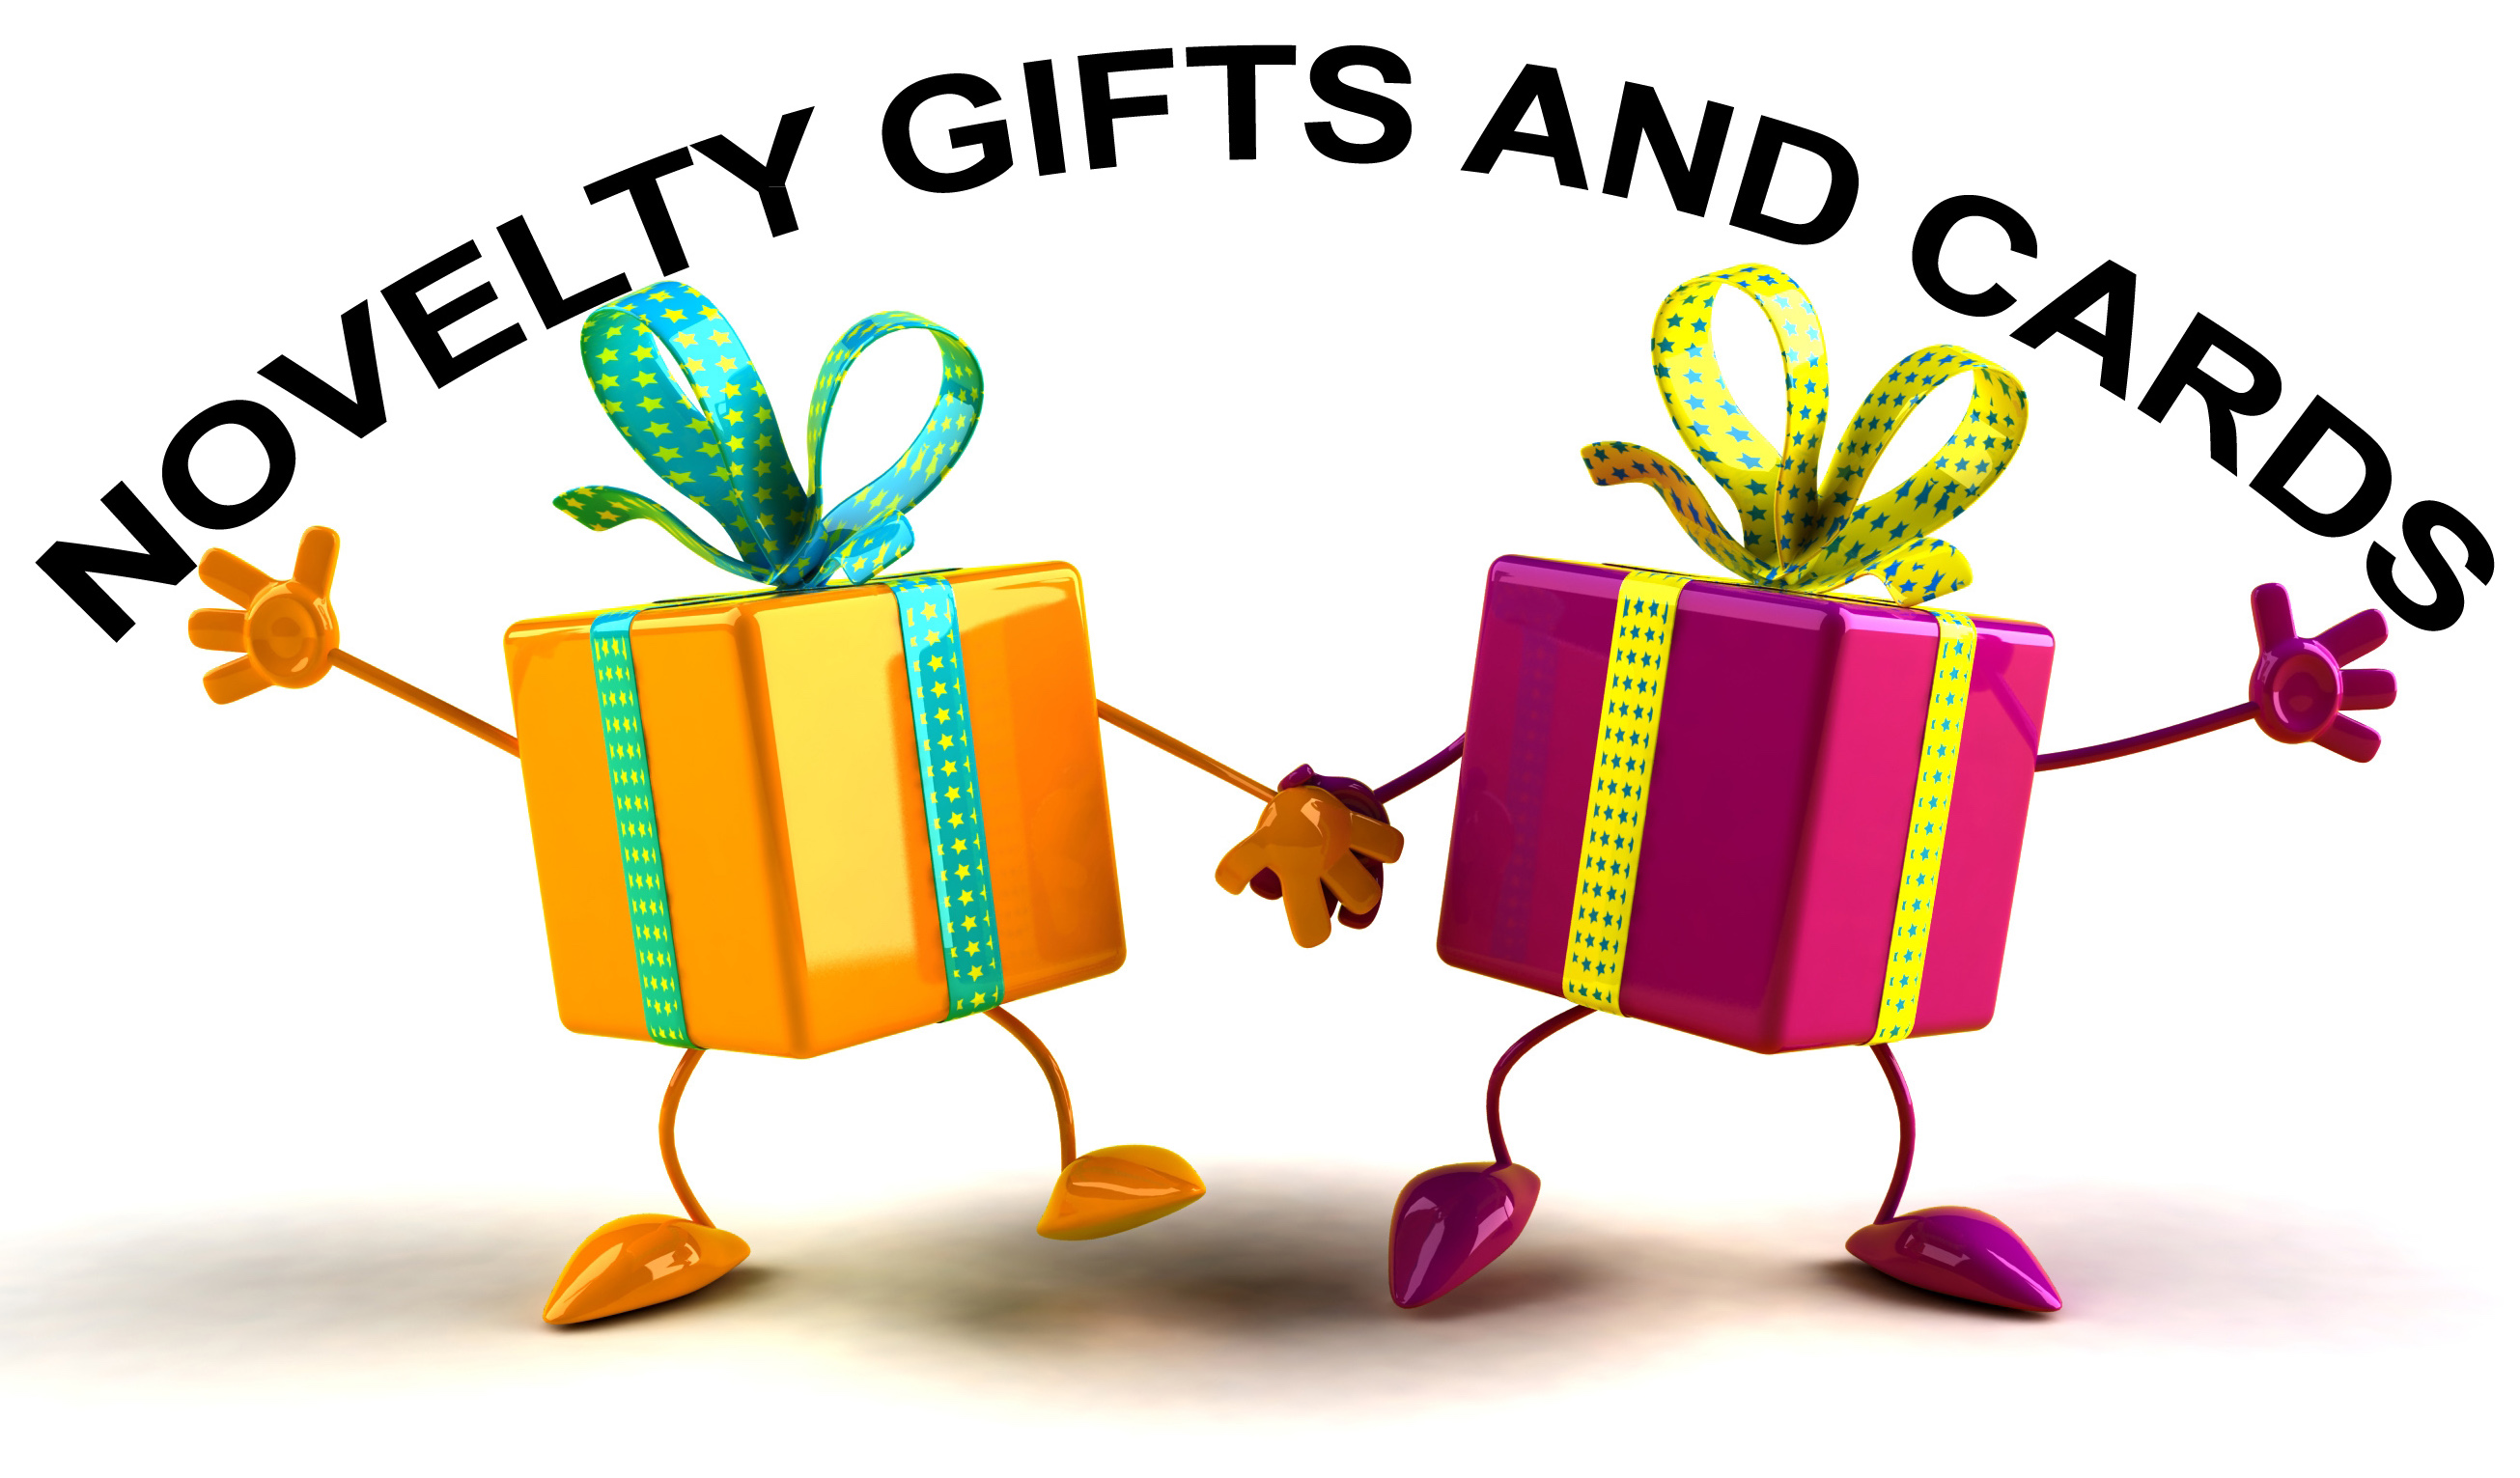 Novelty Gifts and Cards